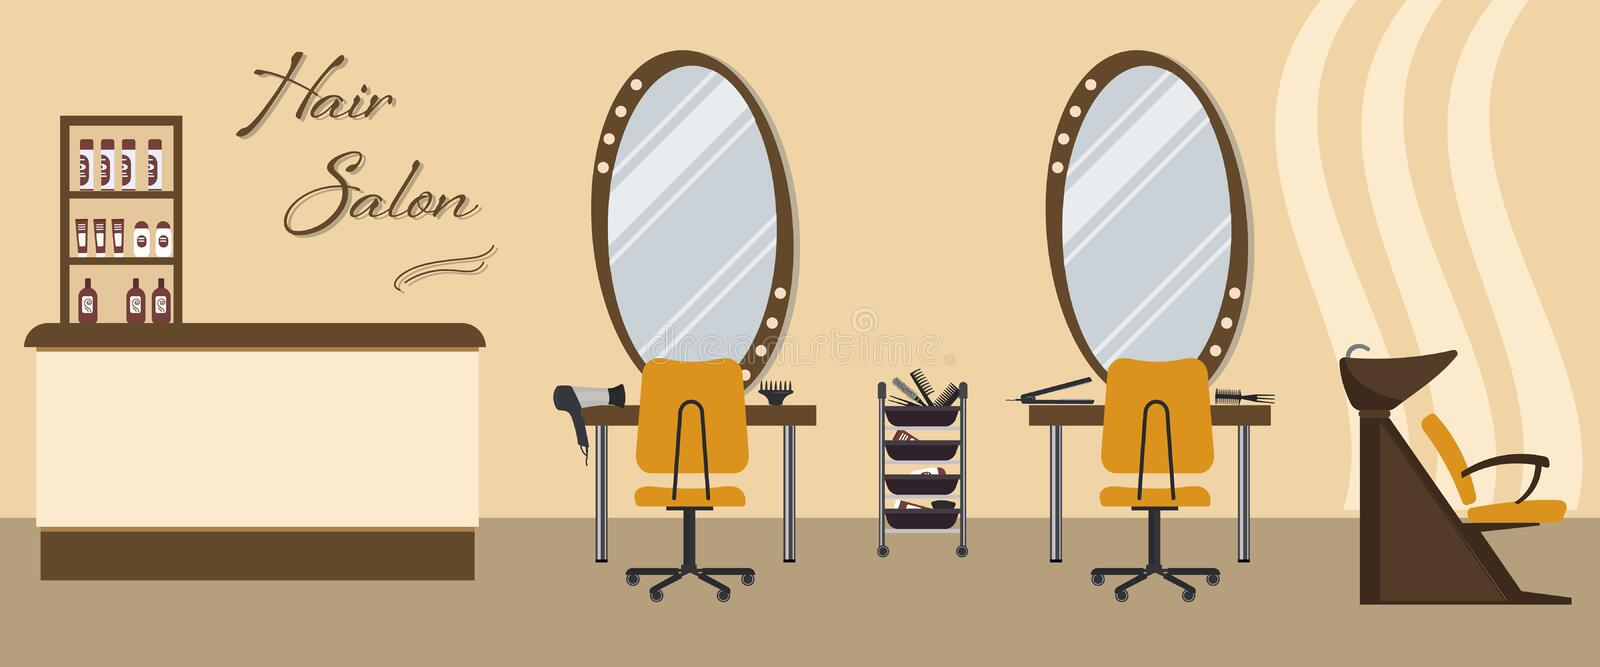 Hair salon interior in yellow color. Beauty salon. There are tables, chairs, a bath for washing the hair, mirrors, hair dryer, combs and shelves with vector illustration